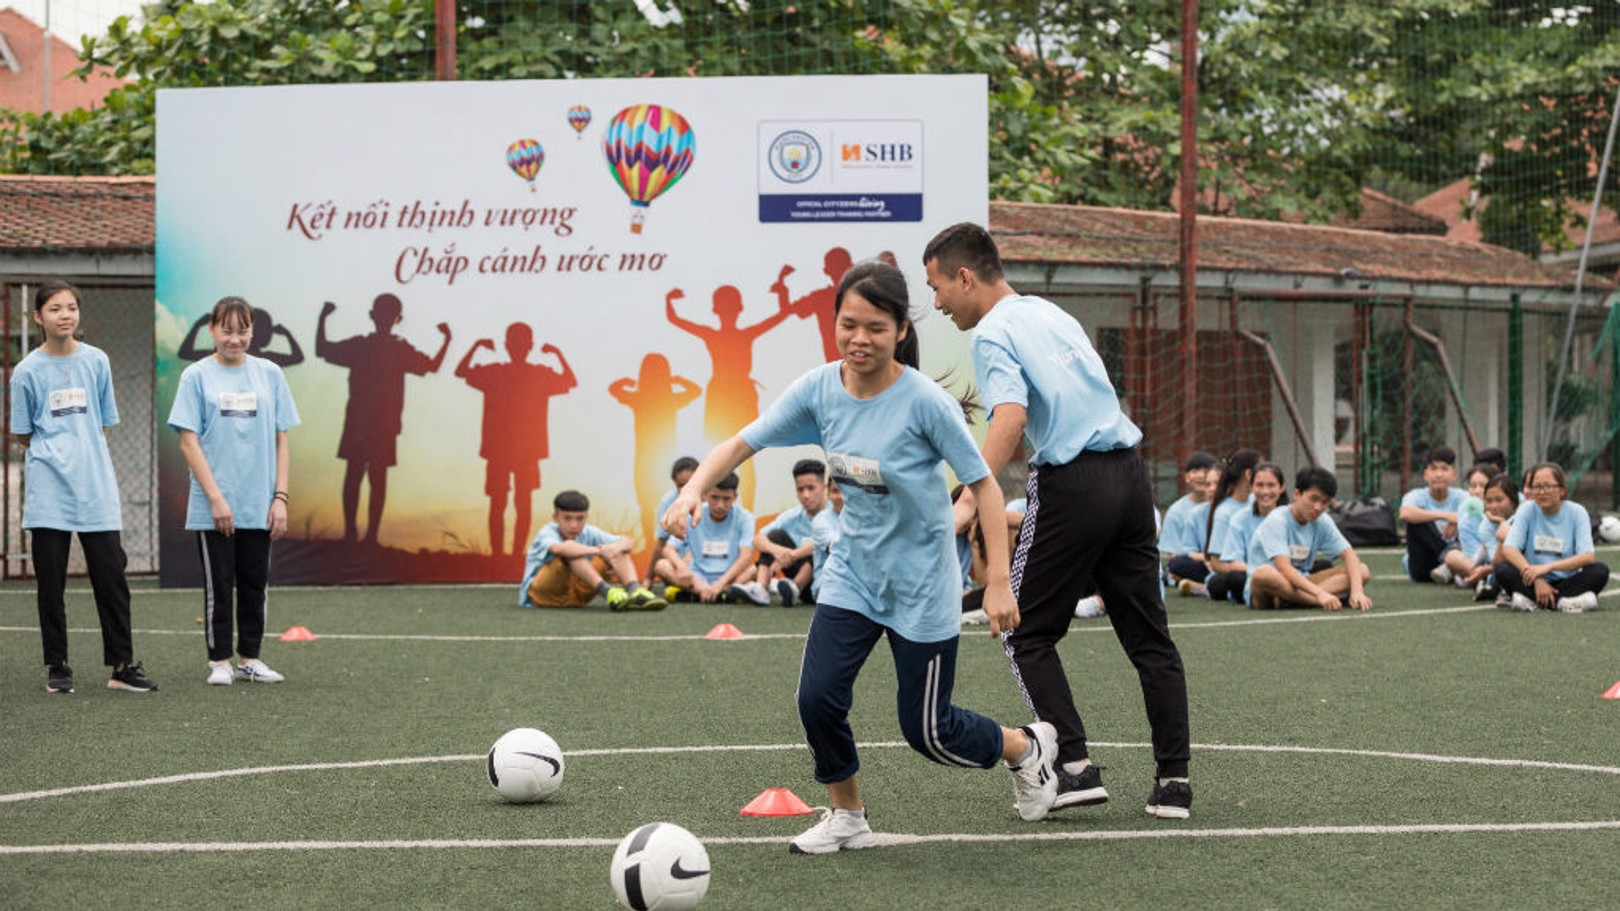 CITC deliver Young Leader training in Vietnam